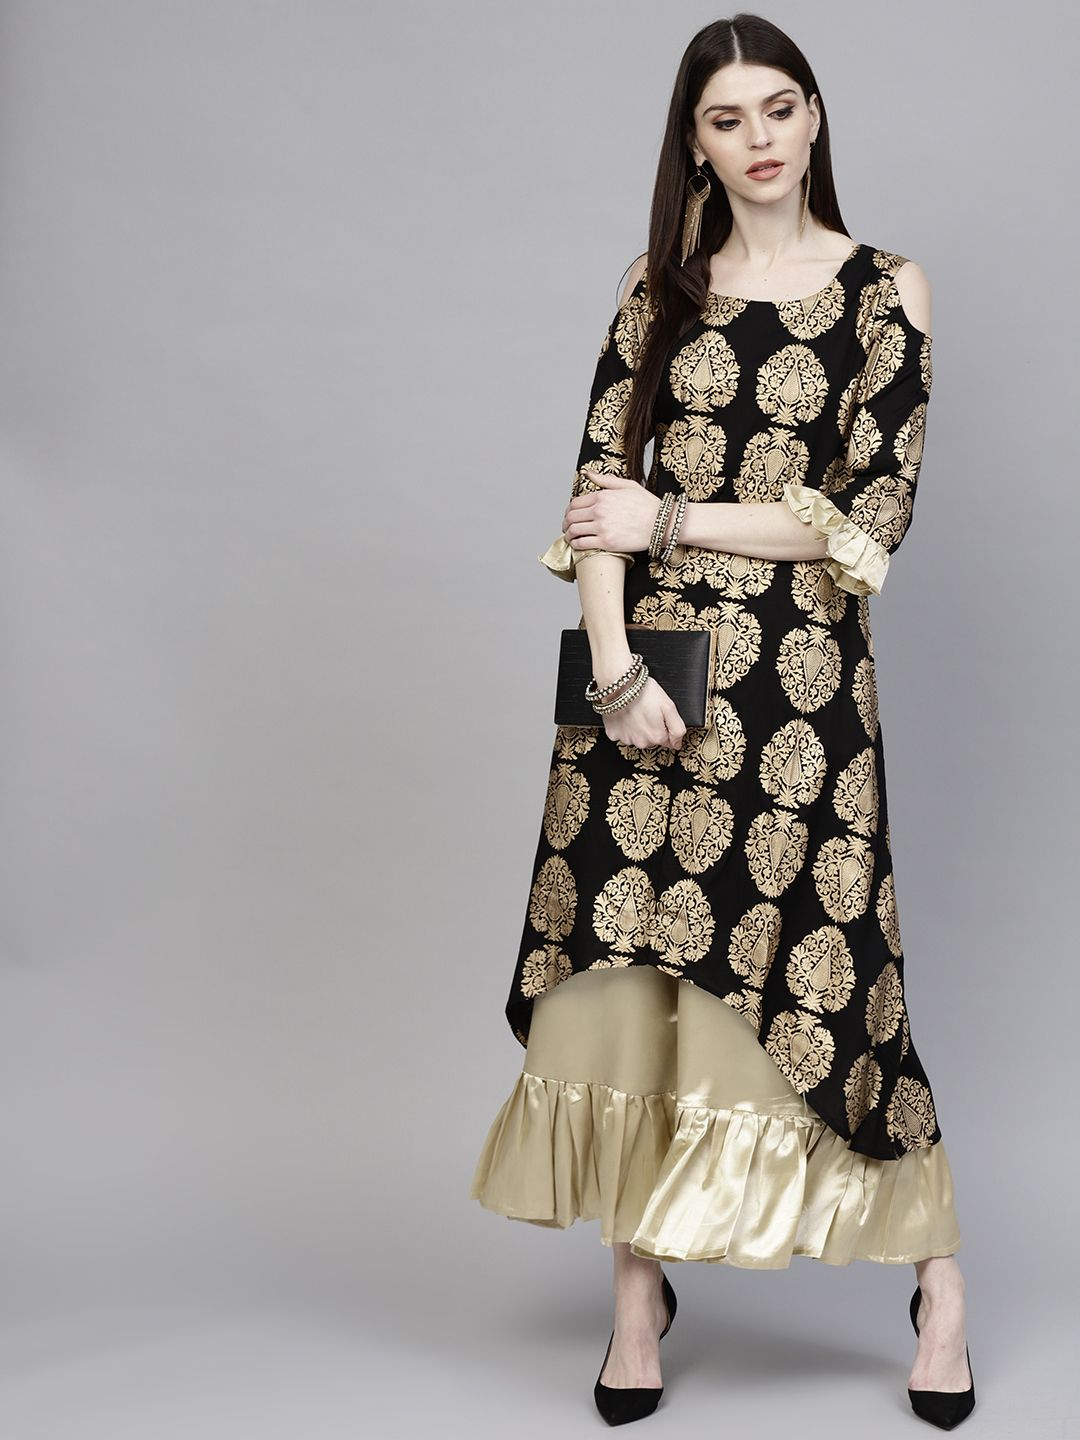 56ab3937d1 Libas Women Black & Golden Printed Kurta With Palazzos - Kurta Sets for  Women 7719033 | Myntra #printedkurta #palazzos #kurtaset #kurta #kurtas  #kurti ...